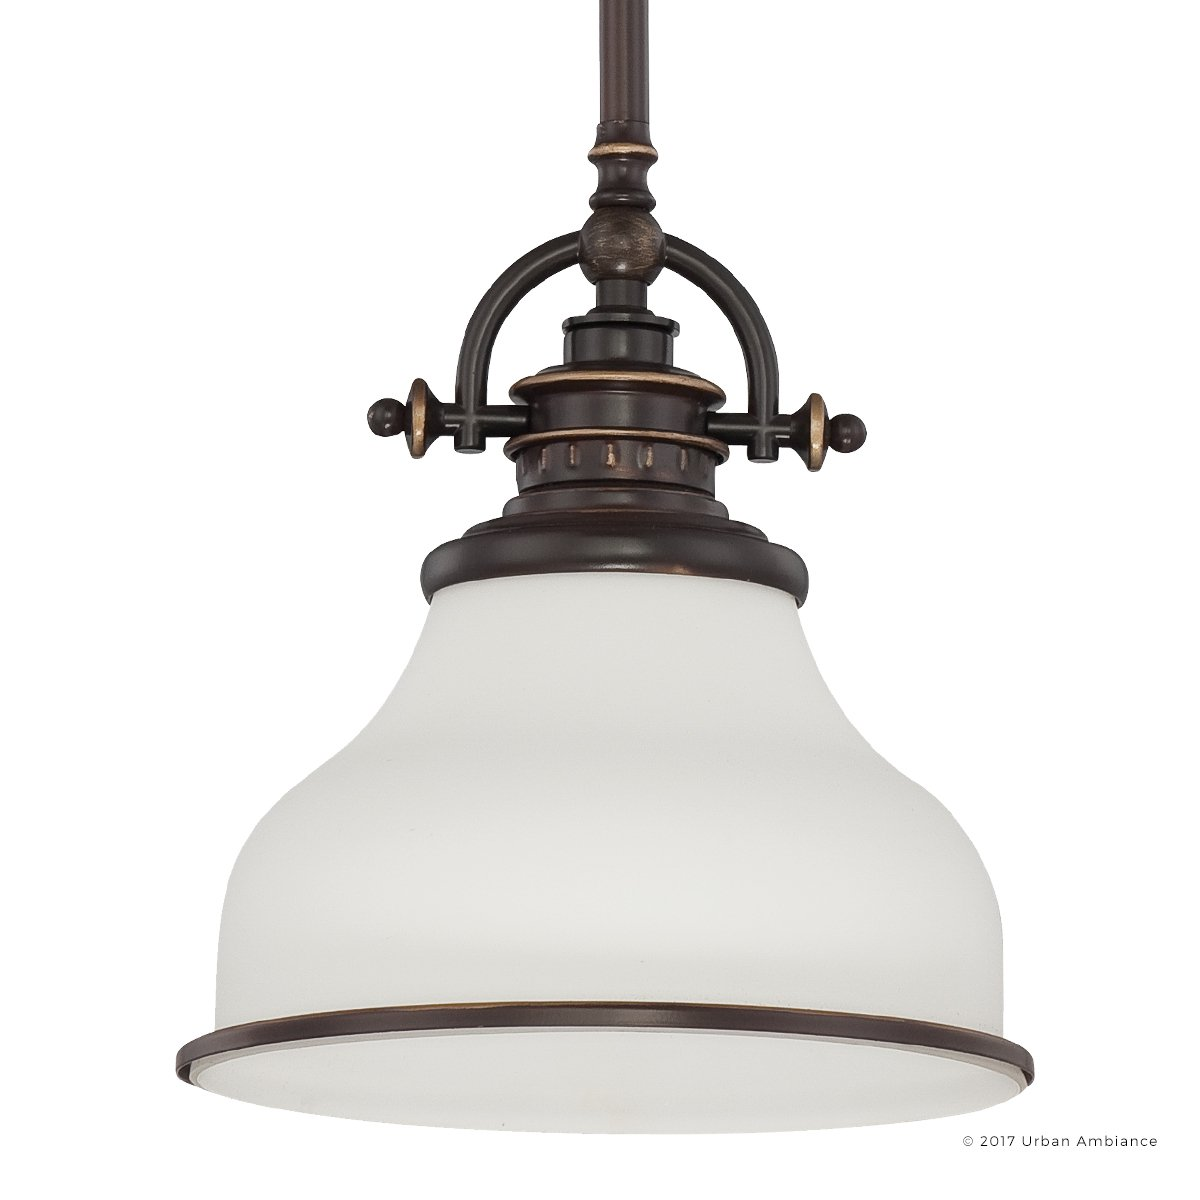 Luxury Industrial Pendant Light, Small Size: 9.5''H x 8''W, with Americana Style Elements, Nostalgic Design, Oil Rubbed Parisian Bronze Finish and Opal Etched Glass, UQL2338 by Urban Ambiance by Urban Ambiance (Image #1)